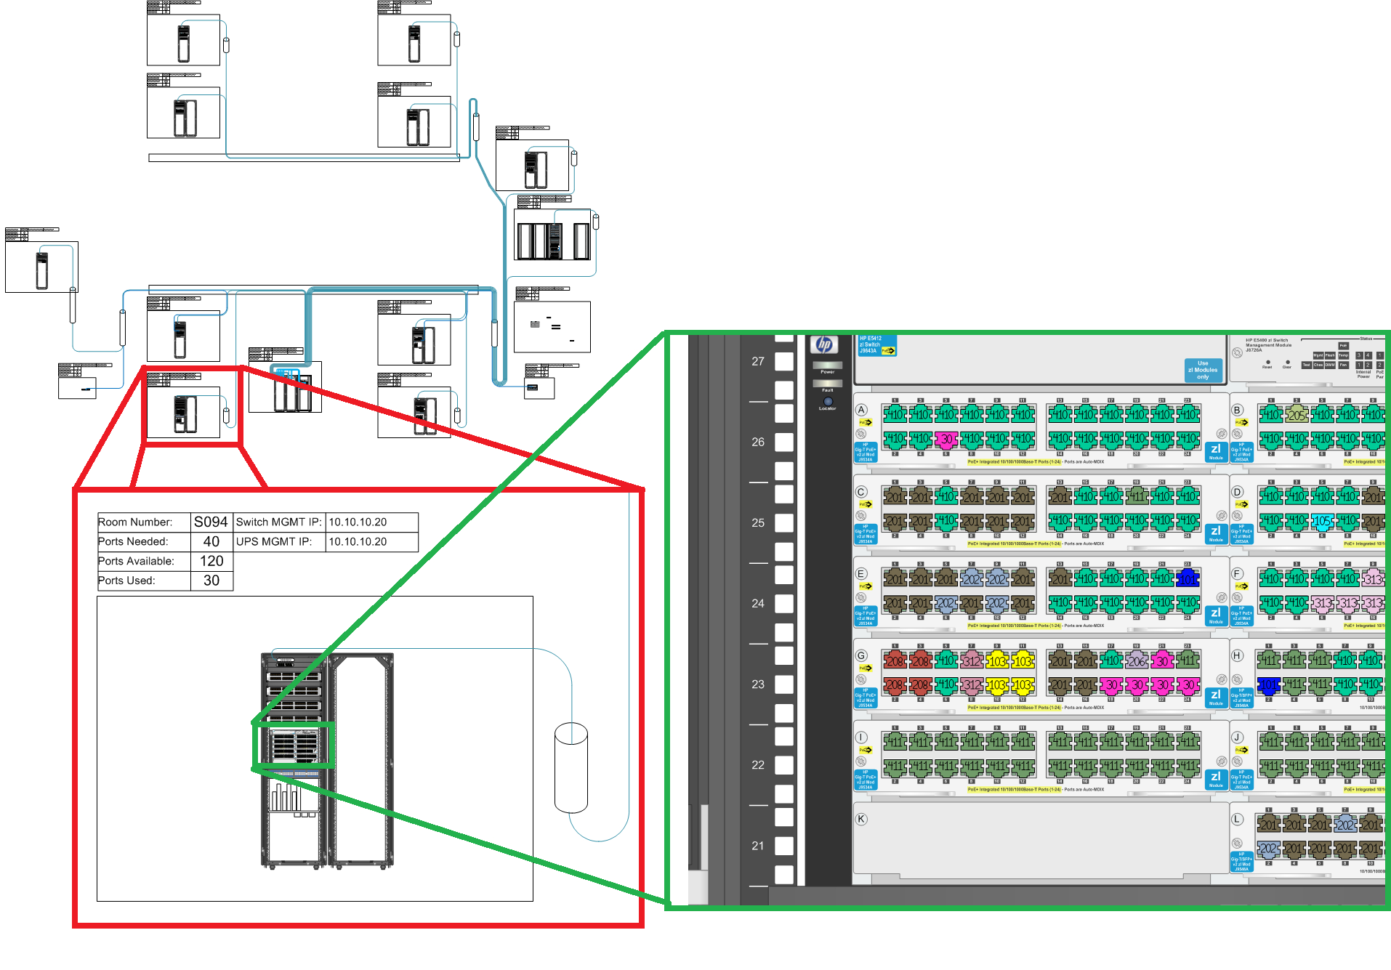 Patch Management Spreadsheet Inside Patch Panel Management And Mapping Software? : Networking